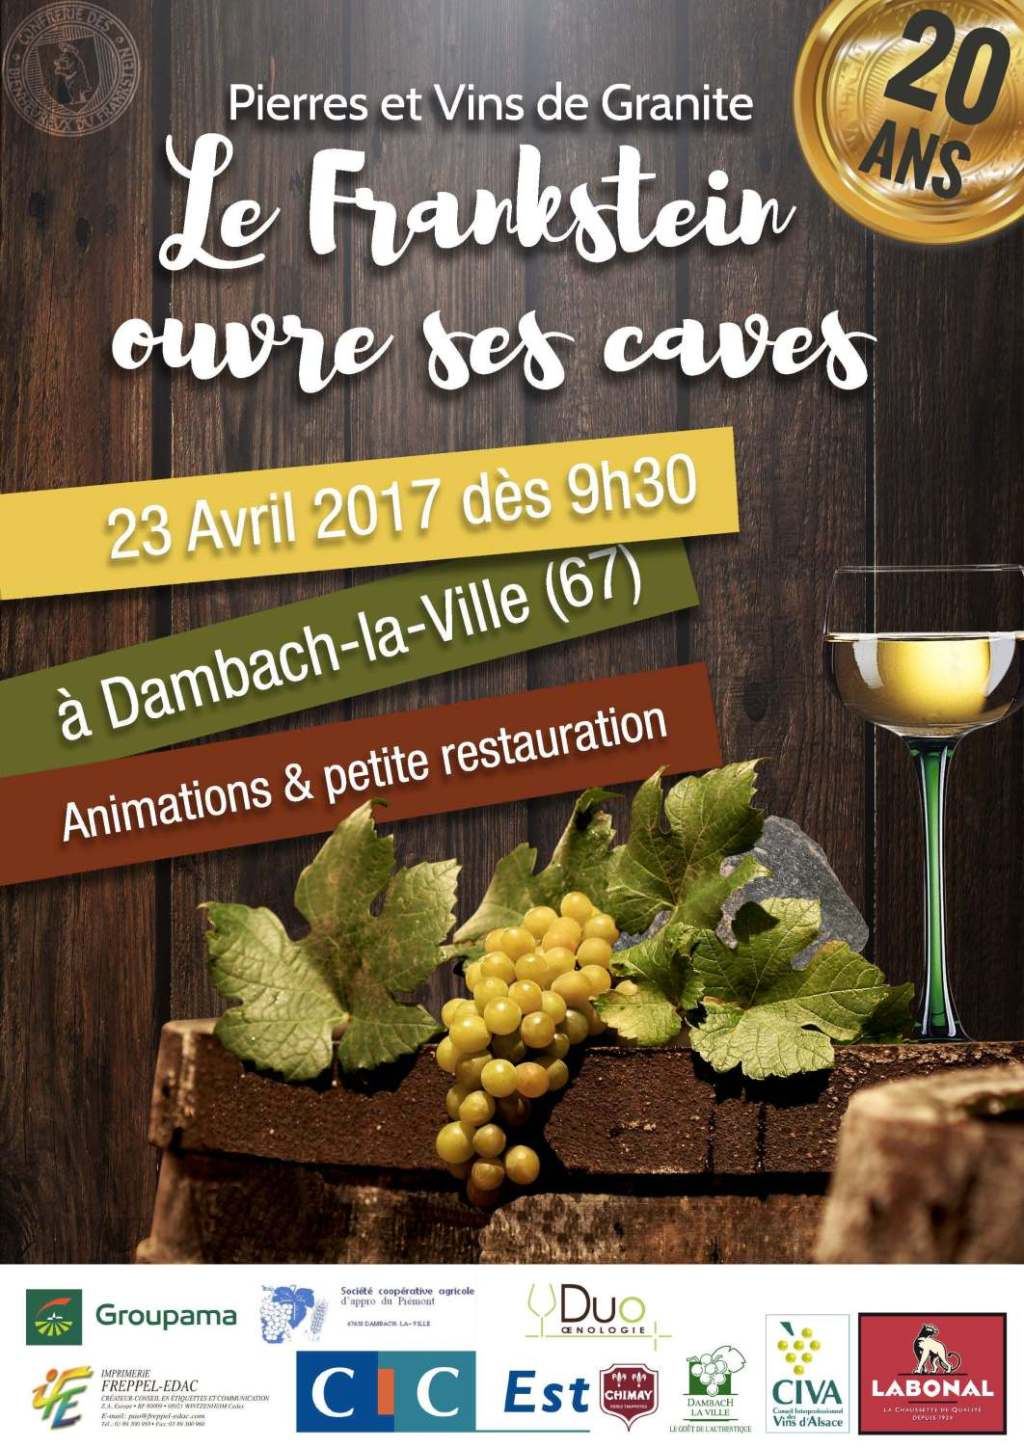 Poster of the 20th edition of Stones and Granite Wines in Dambach-la-Ville